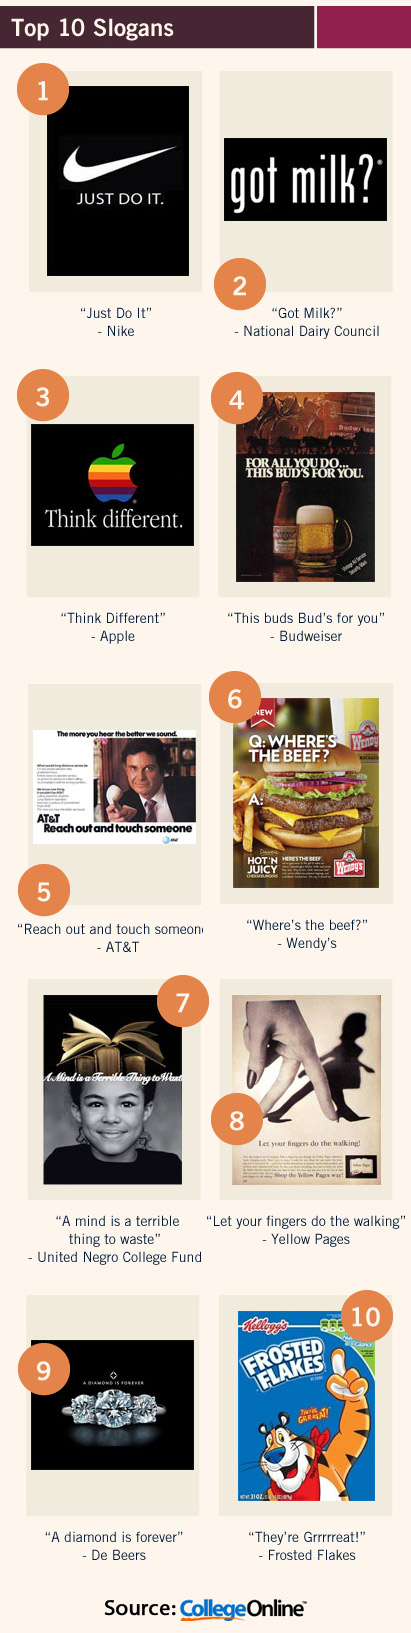 top-10-slogans-all-time